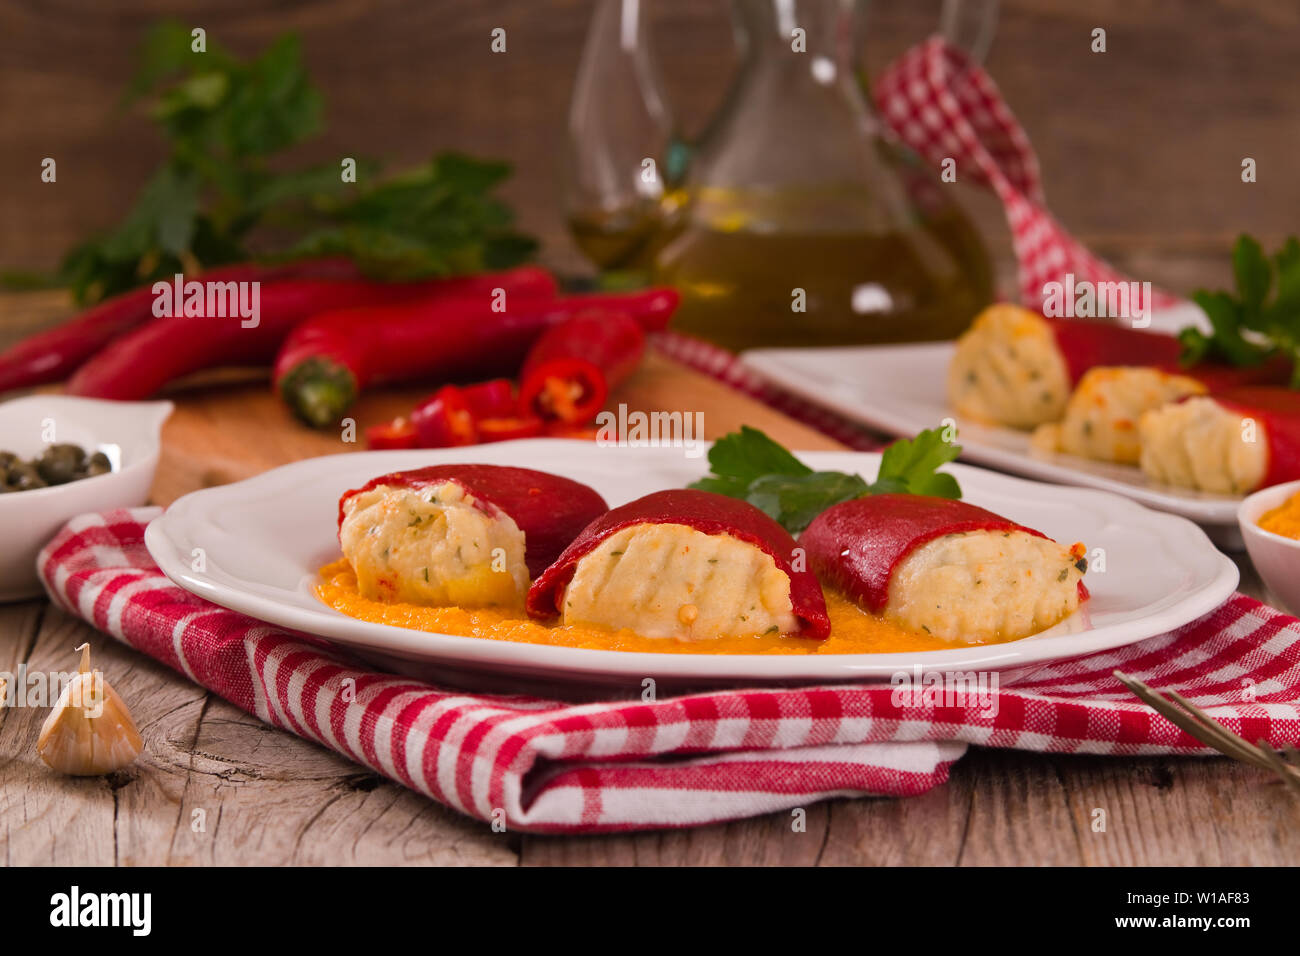 Stuffed piquillo peppers with cod. - Stock Image